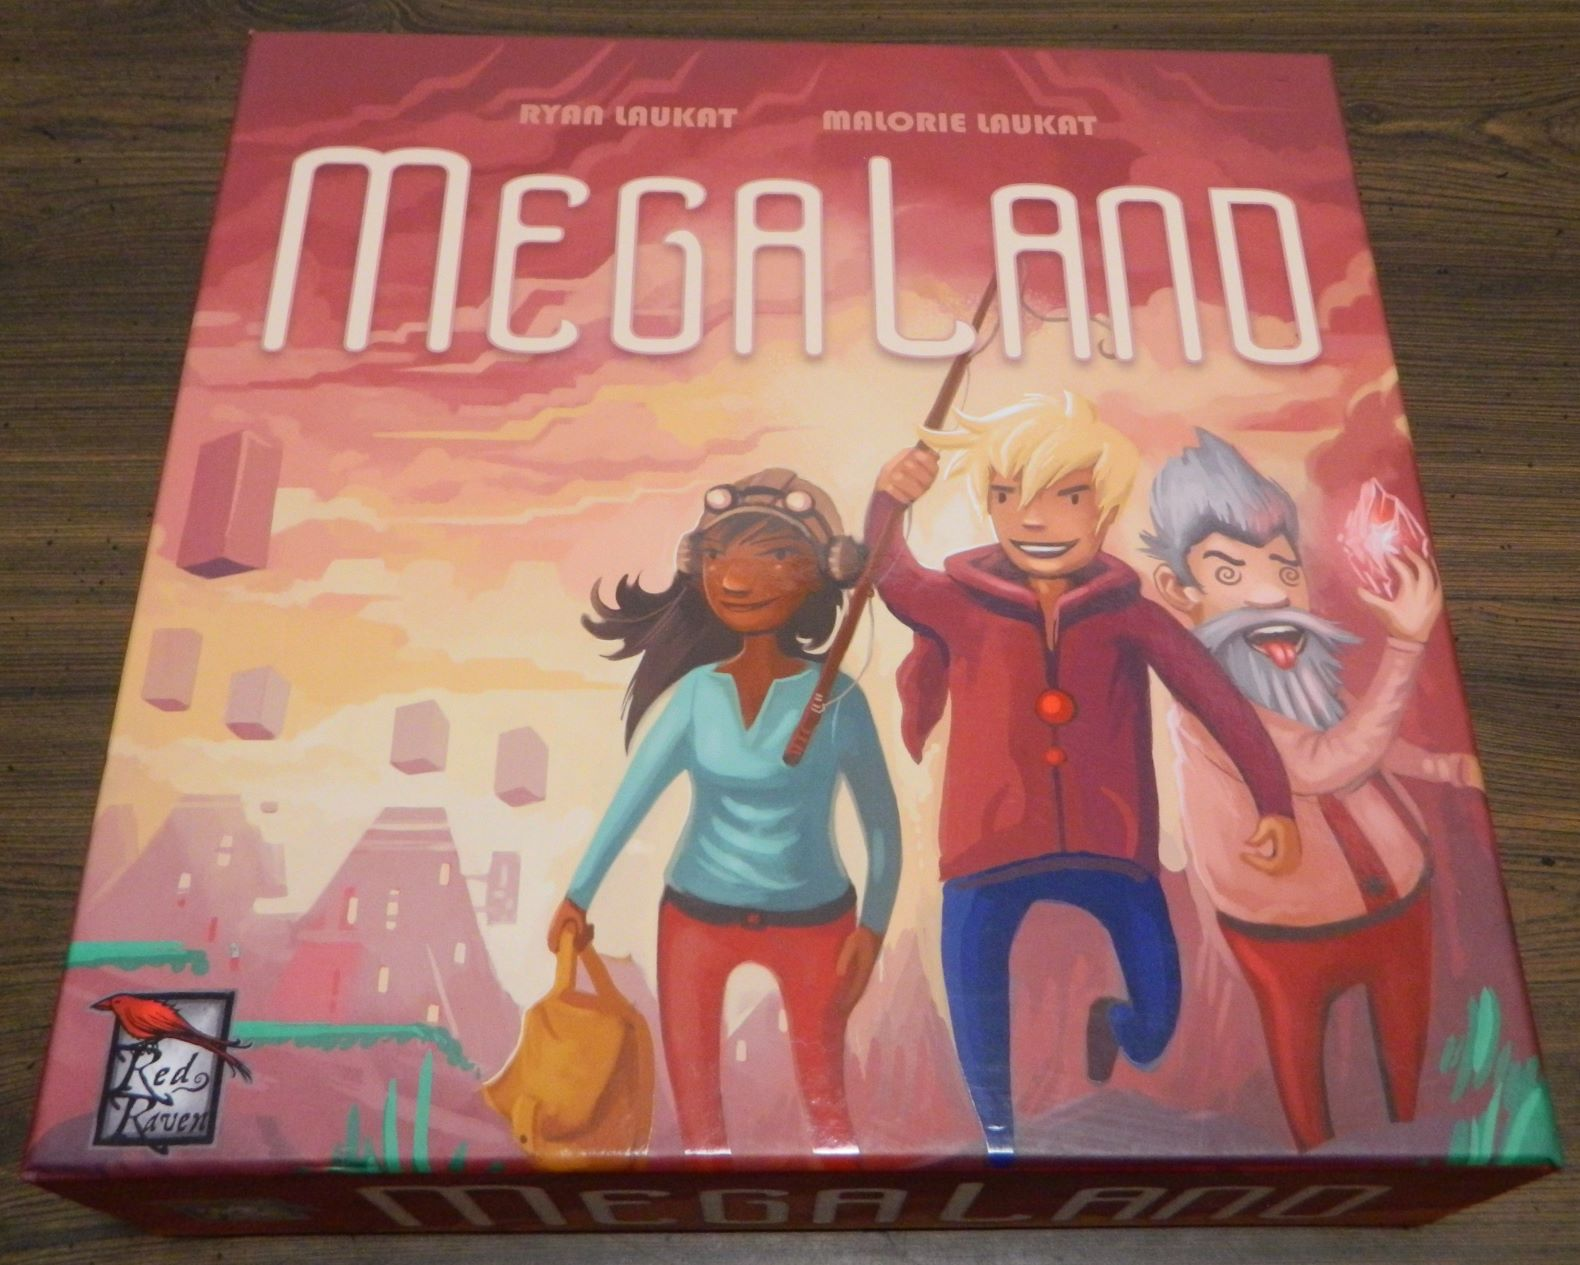 Box for Megaland